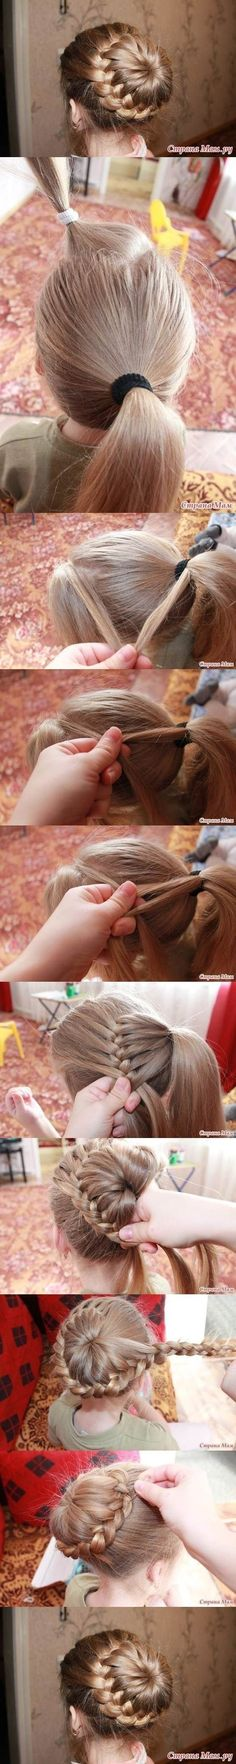 wanna try this